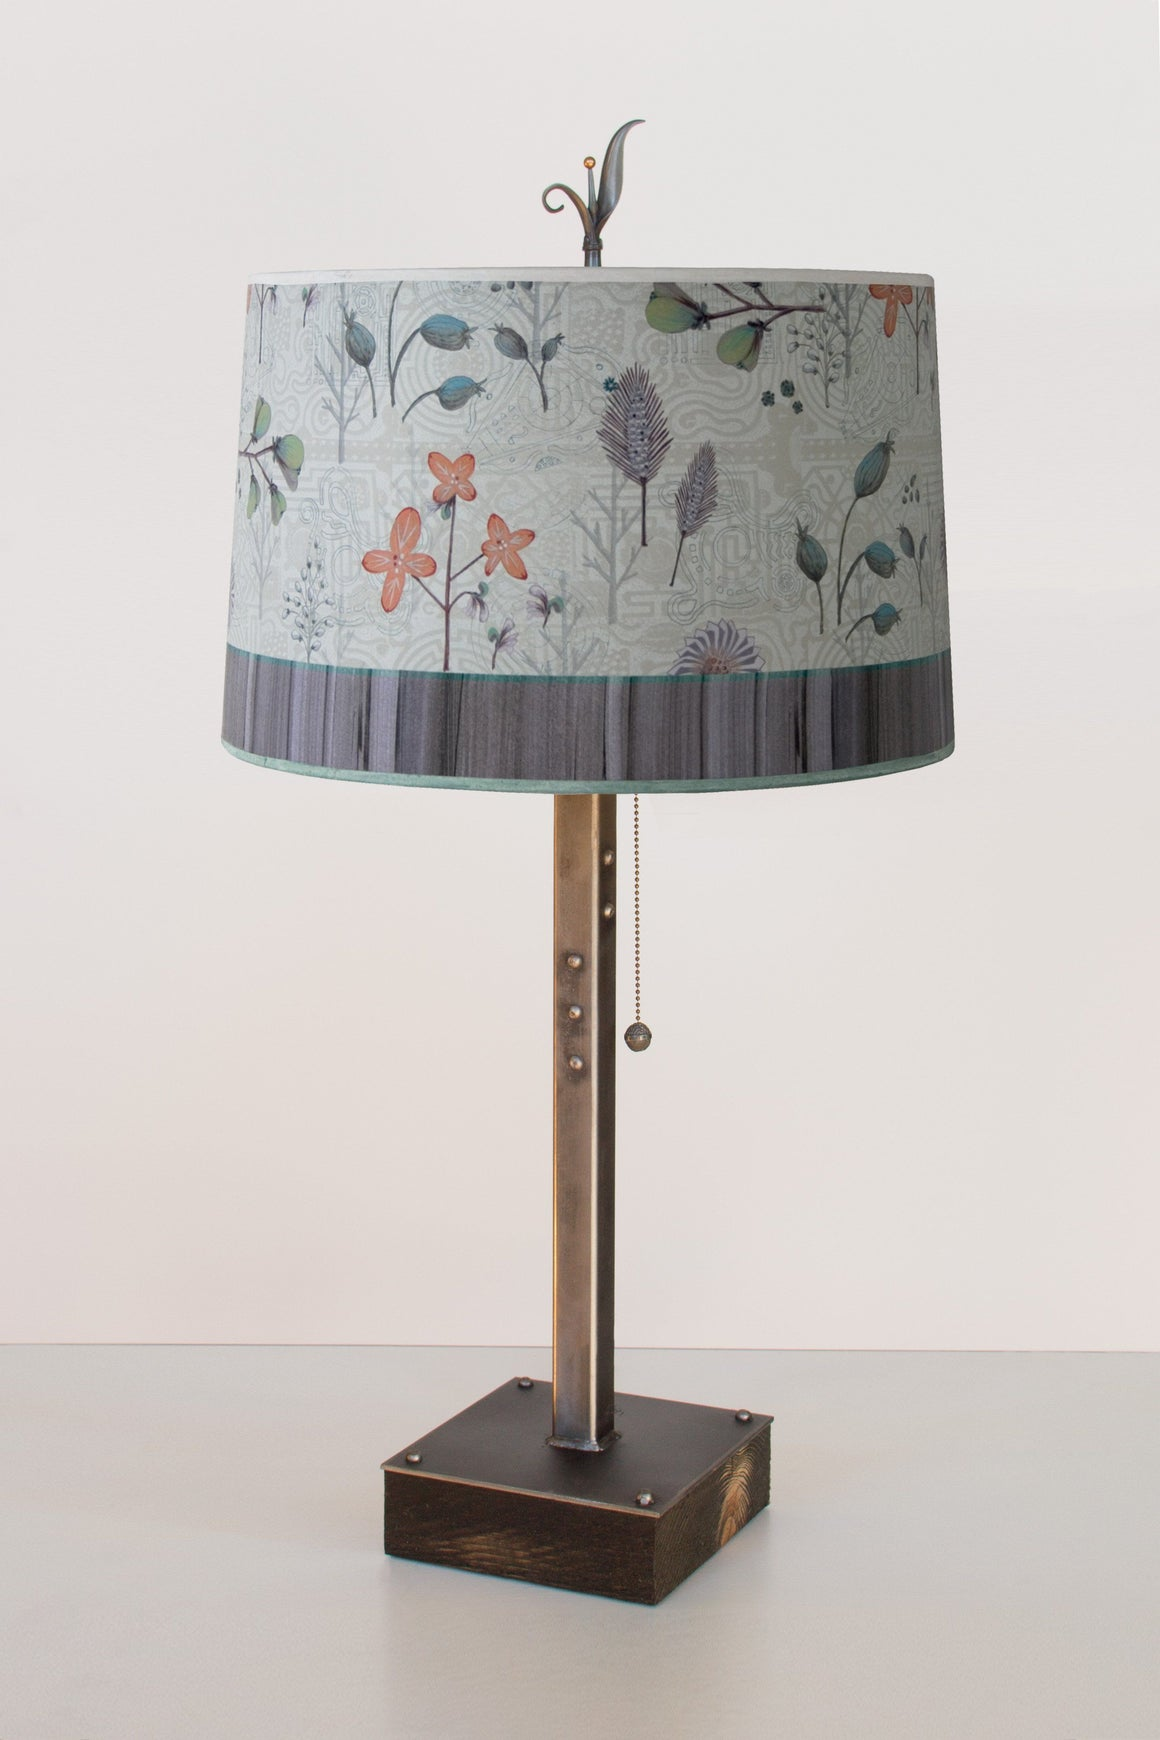 Steel Table Lamp on Wood with Large Drum Shade in Flora and Maze